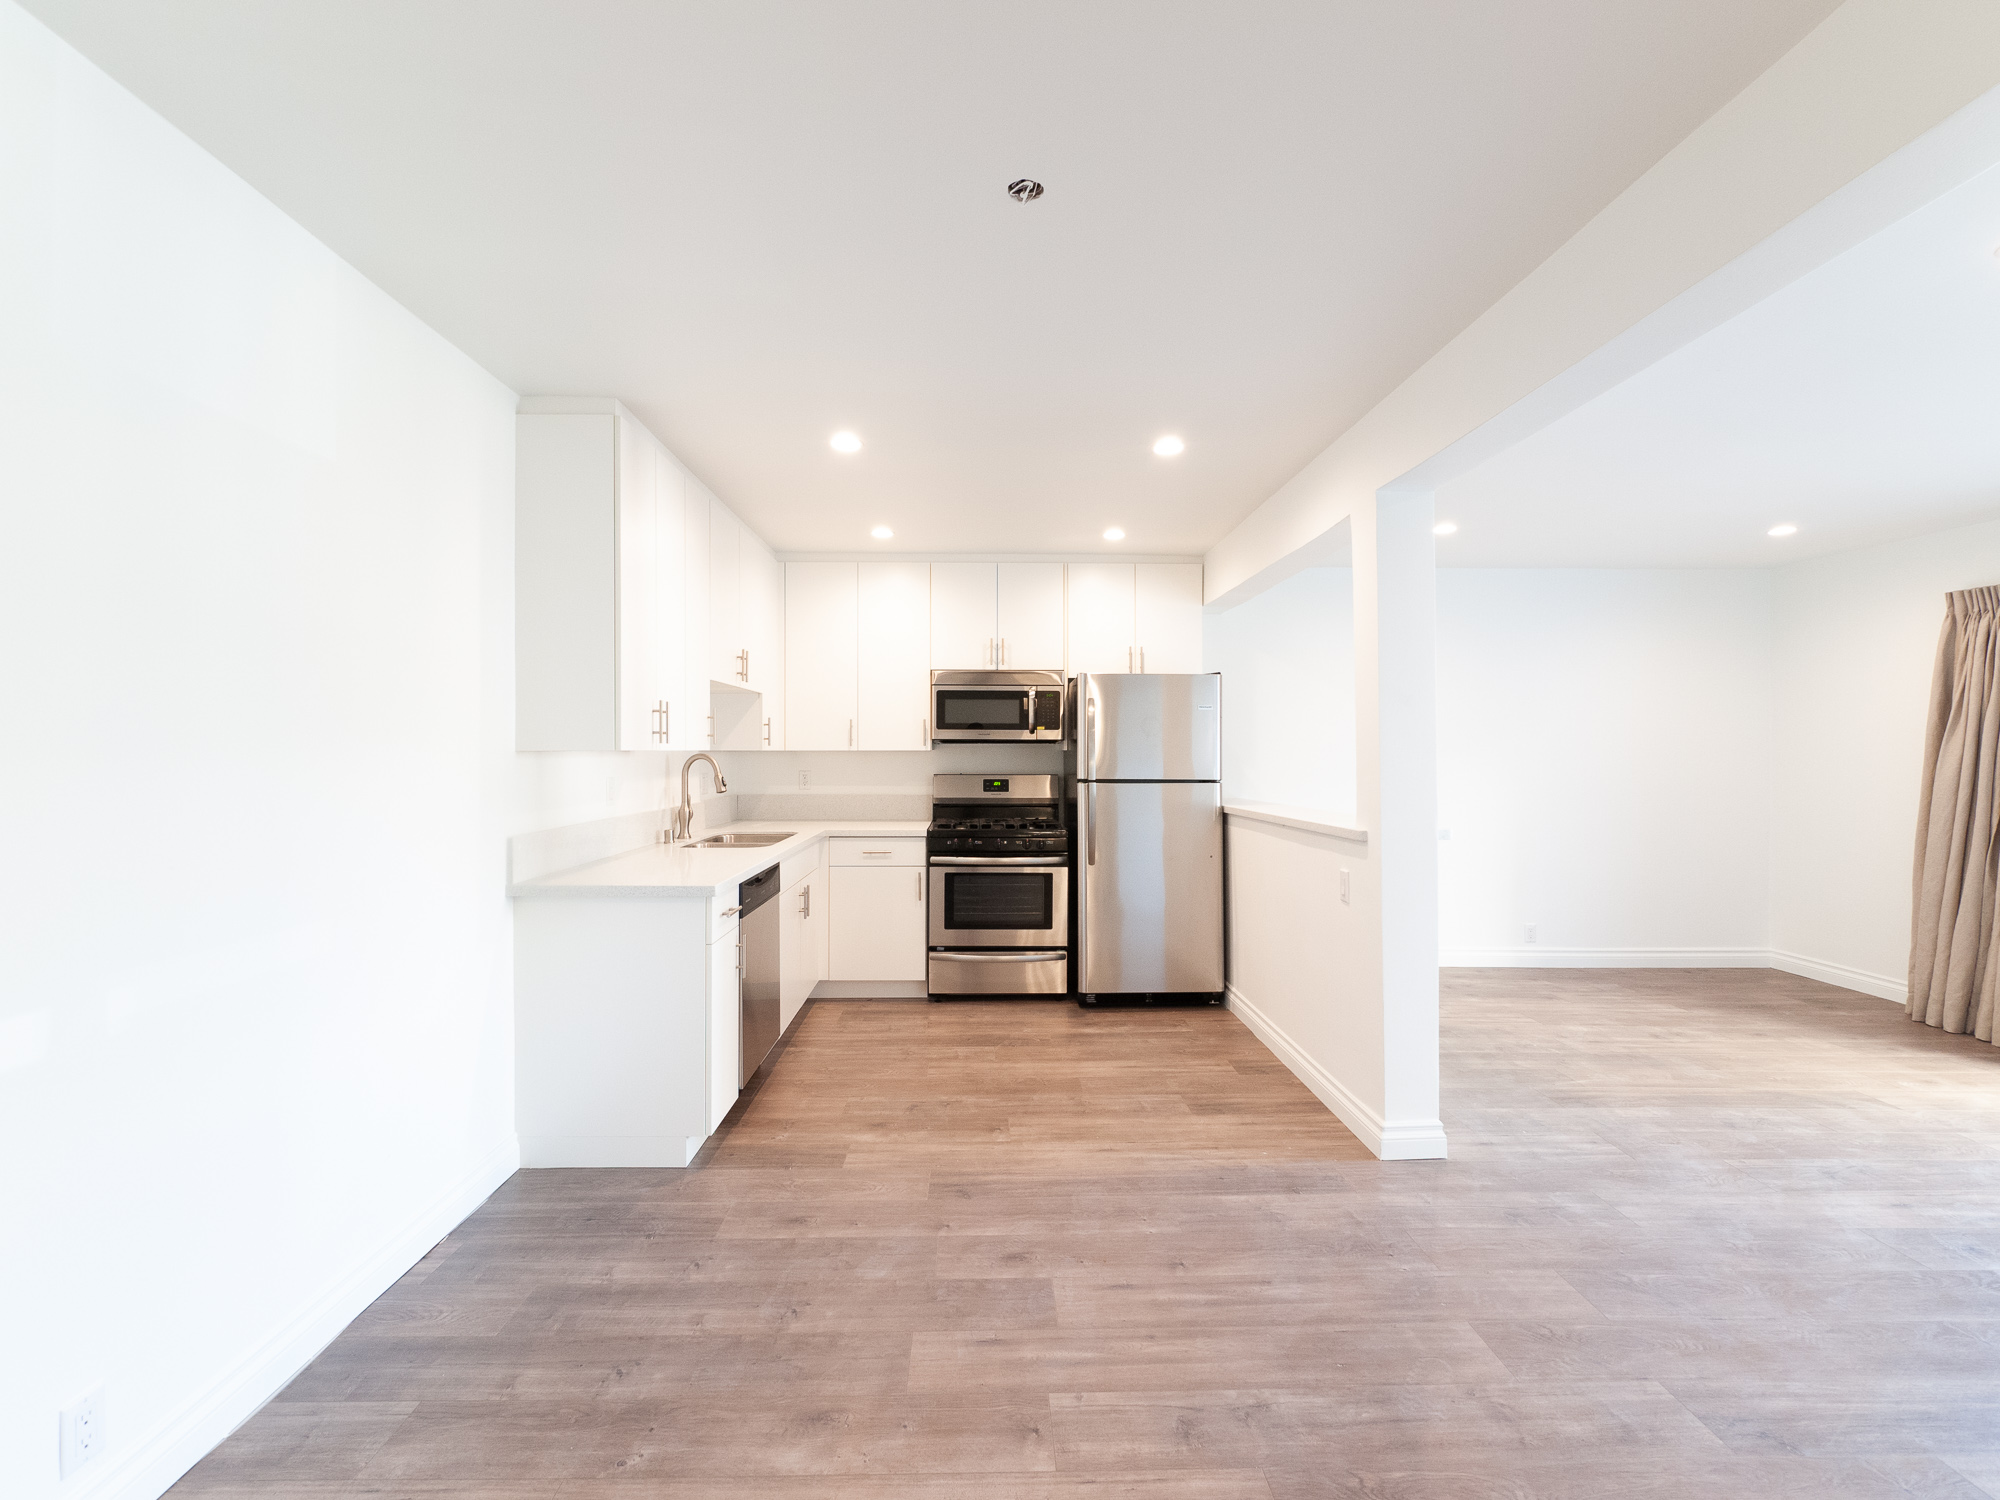 Mid Century Beauty! Just Renovated Spacious One Bedroom  - Private Balcony - Sleek, Modern Kitchen- Parking-Great Location!